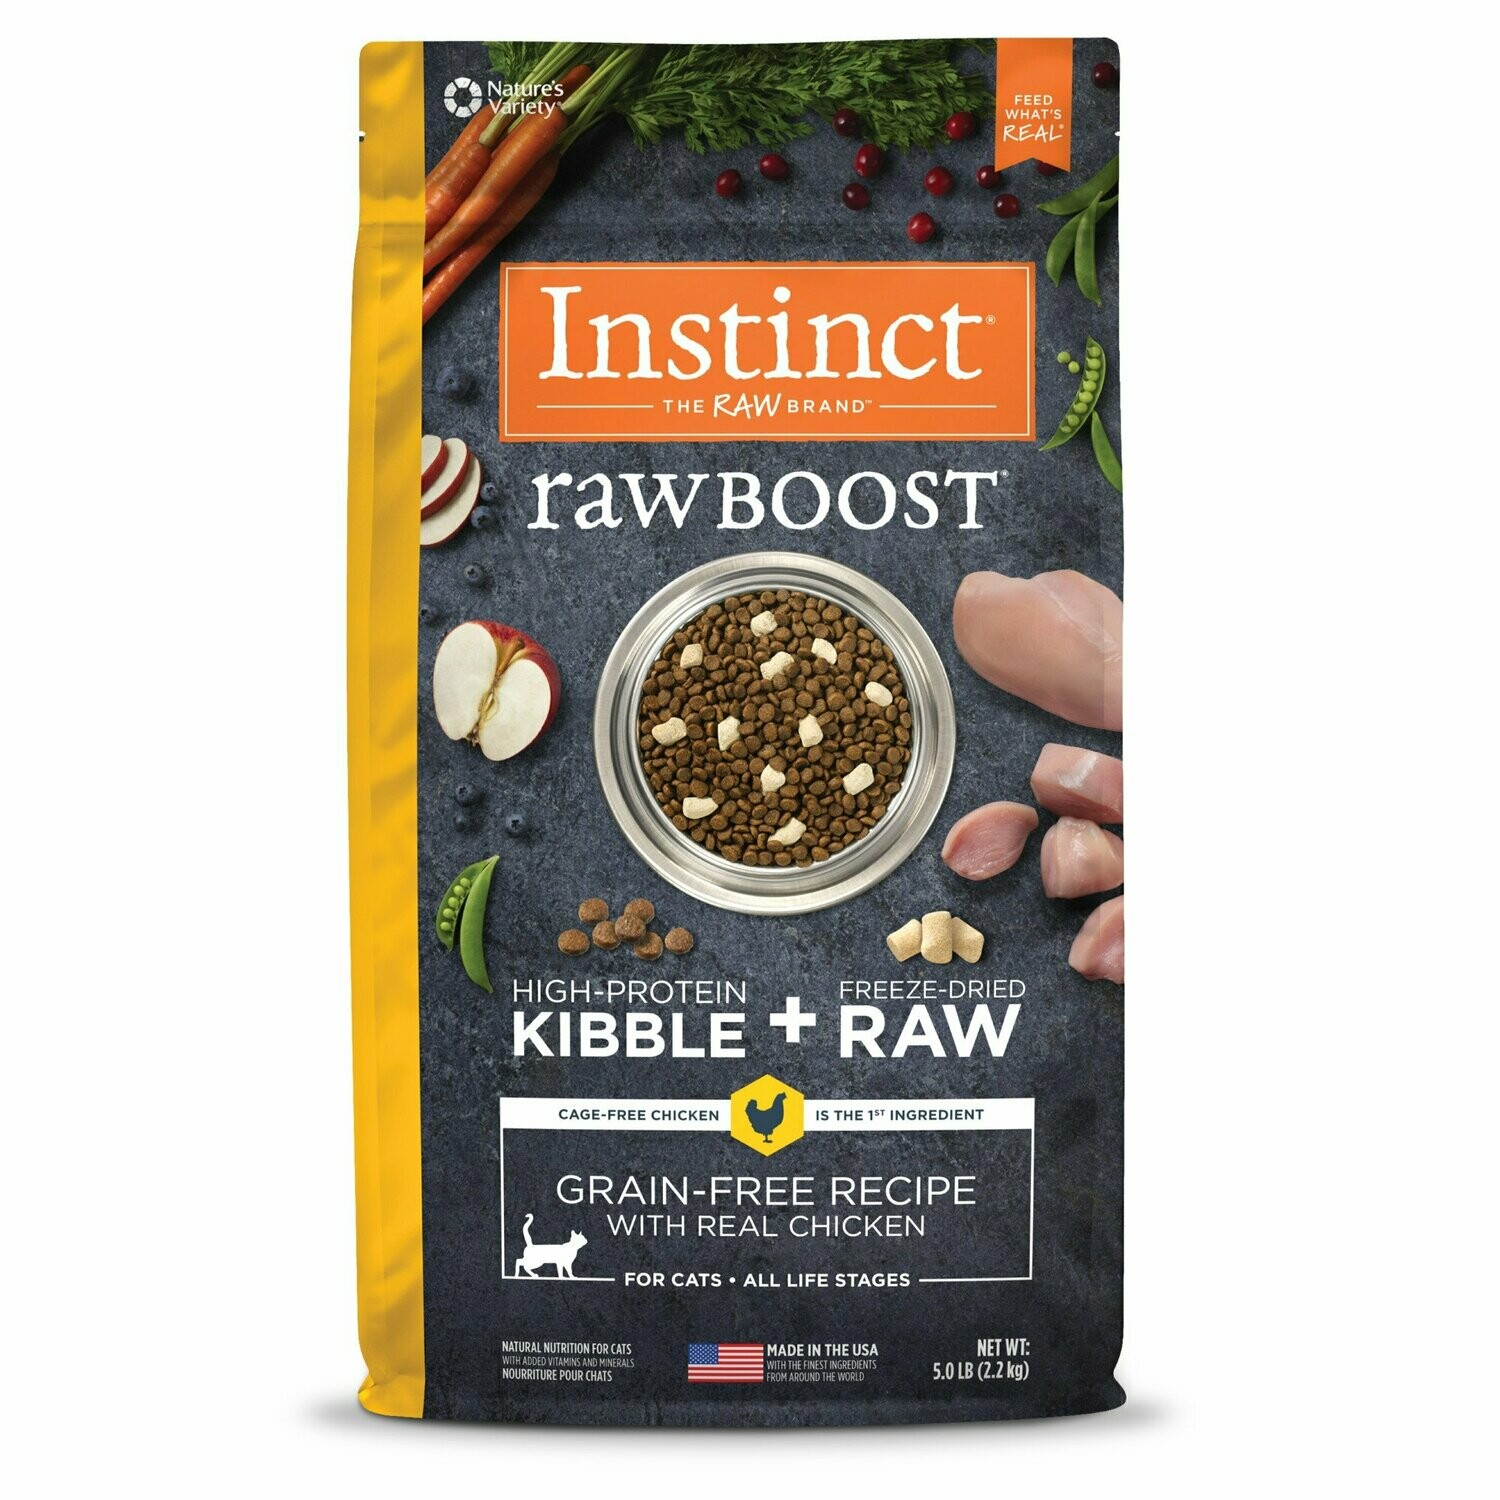 Instinct Raw Boost Grain Free Recipe with Real Chicken Dry Cat Food, 5 lbs. (2/20) (A.K2)